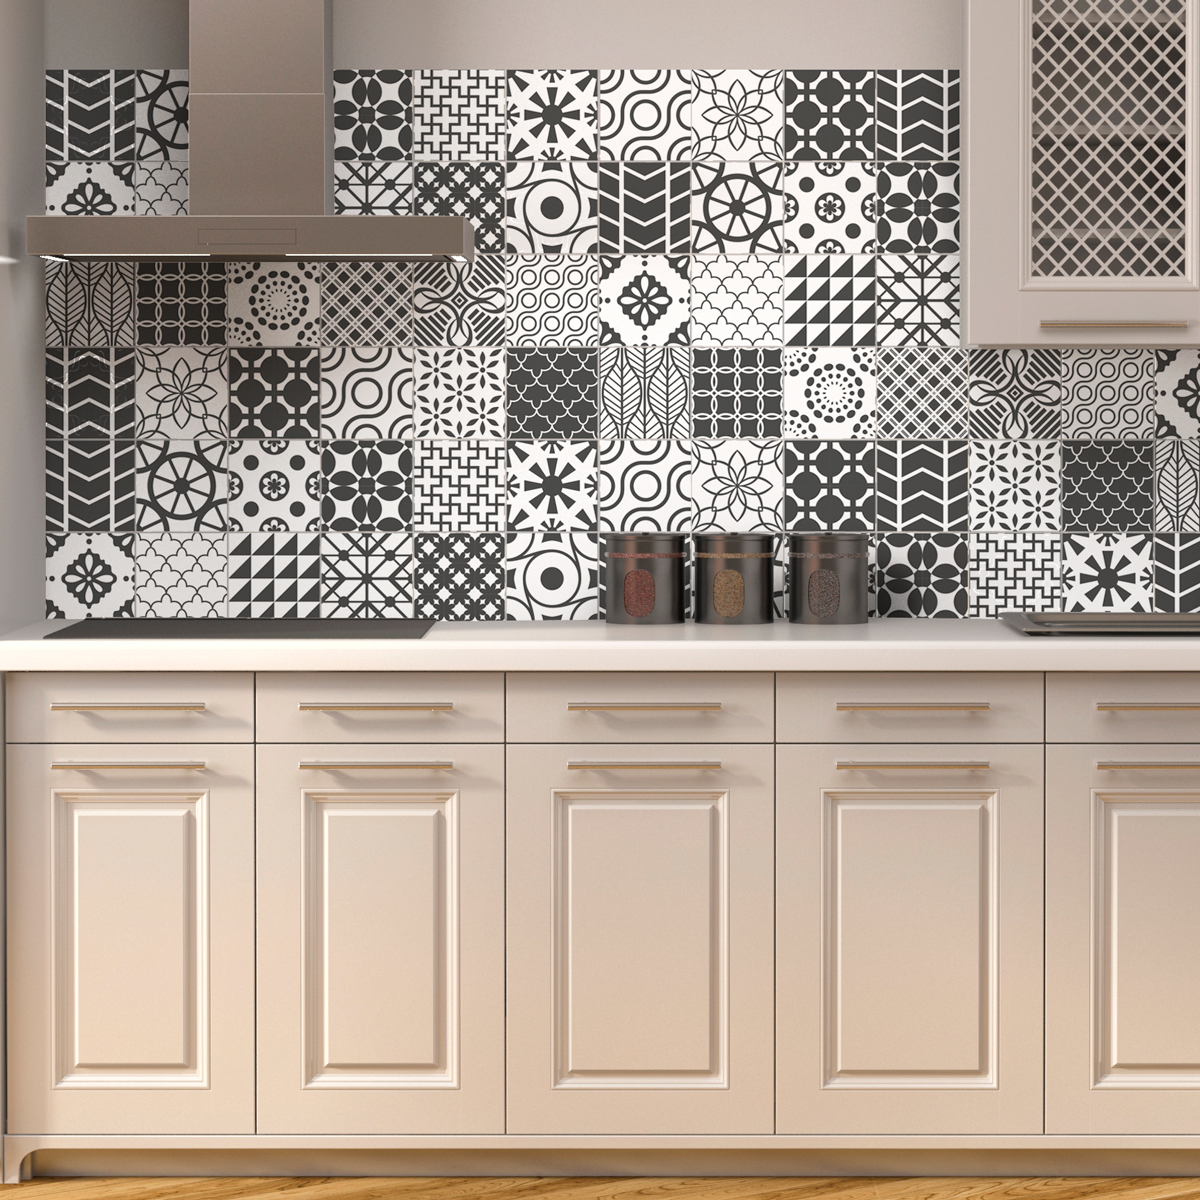 24 stickers carreaux de ciment nuances de gris lindos. Black Bedroom Furniture Sets. Home Design Ideas